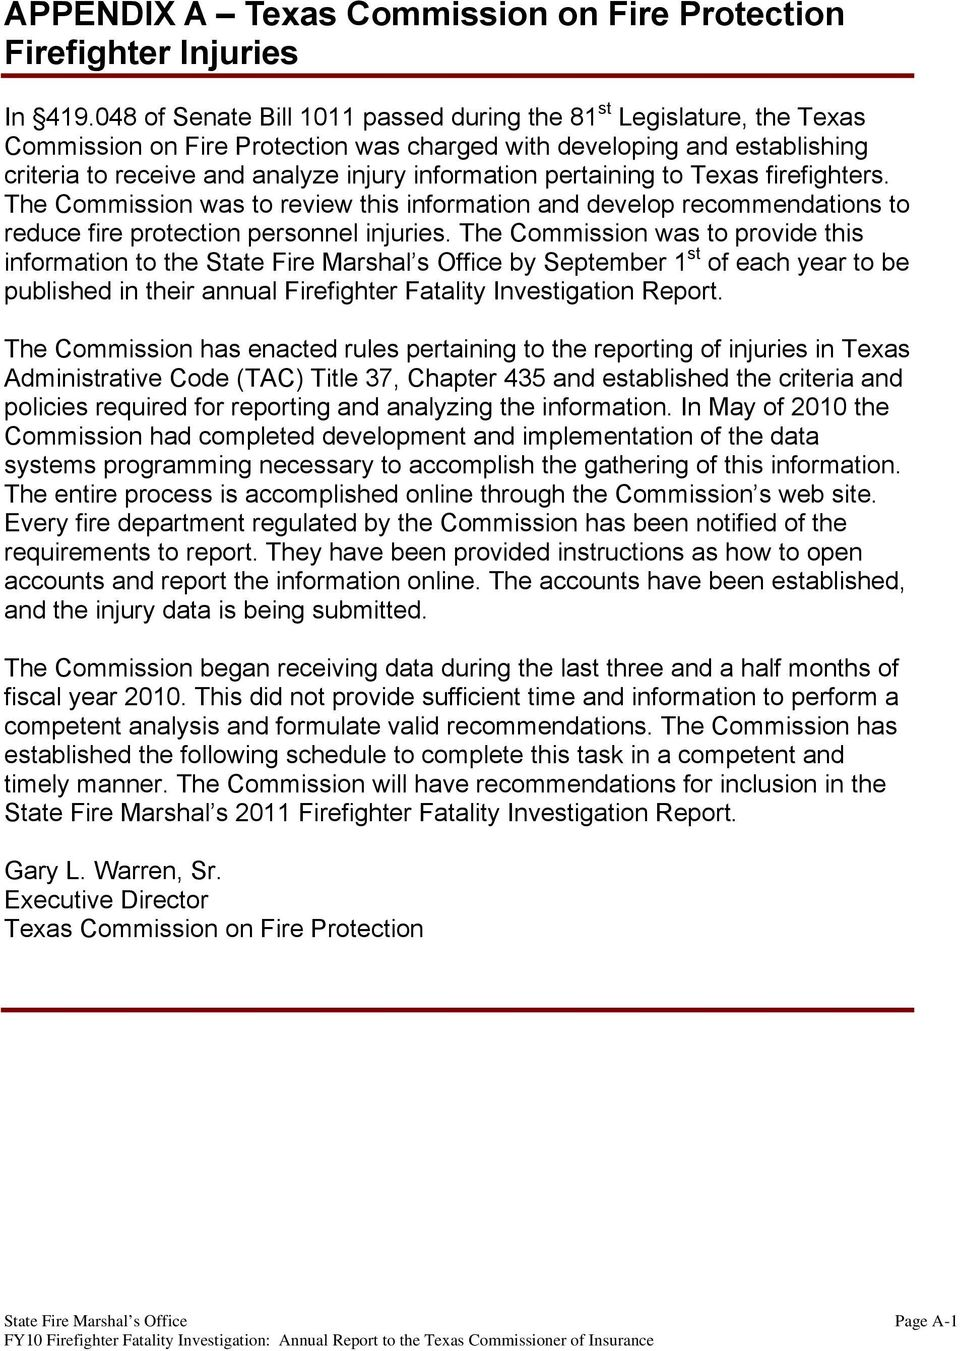 pertaining to Texas firefighters. The Commission was to review this information and develop recommendations to reduce fire protection personnel injuries.